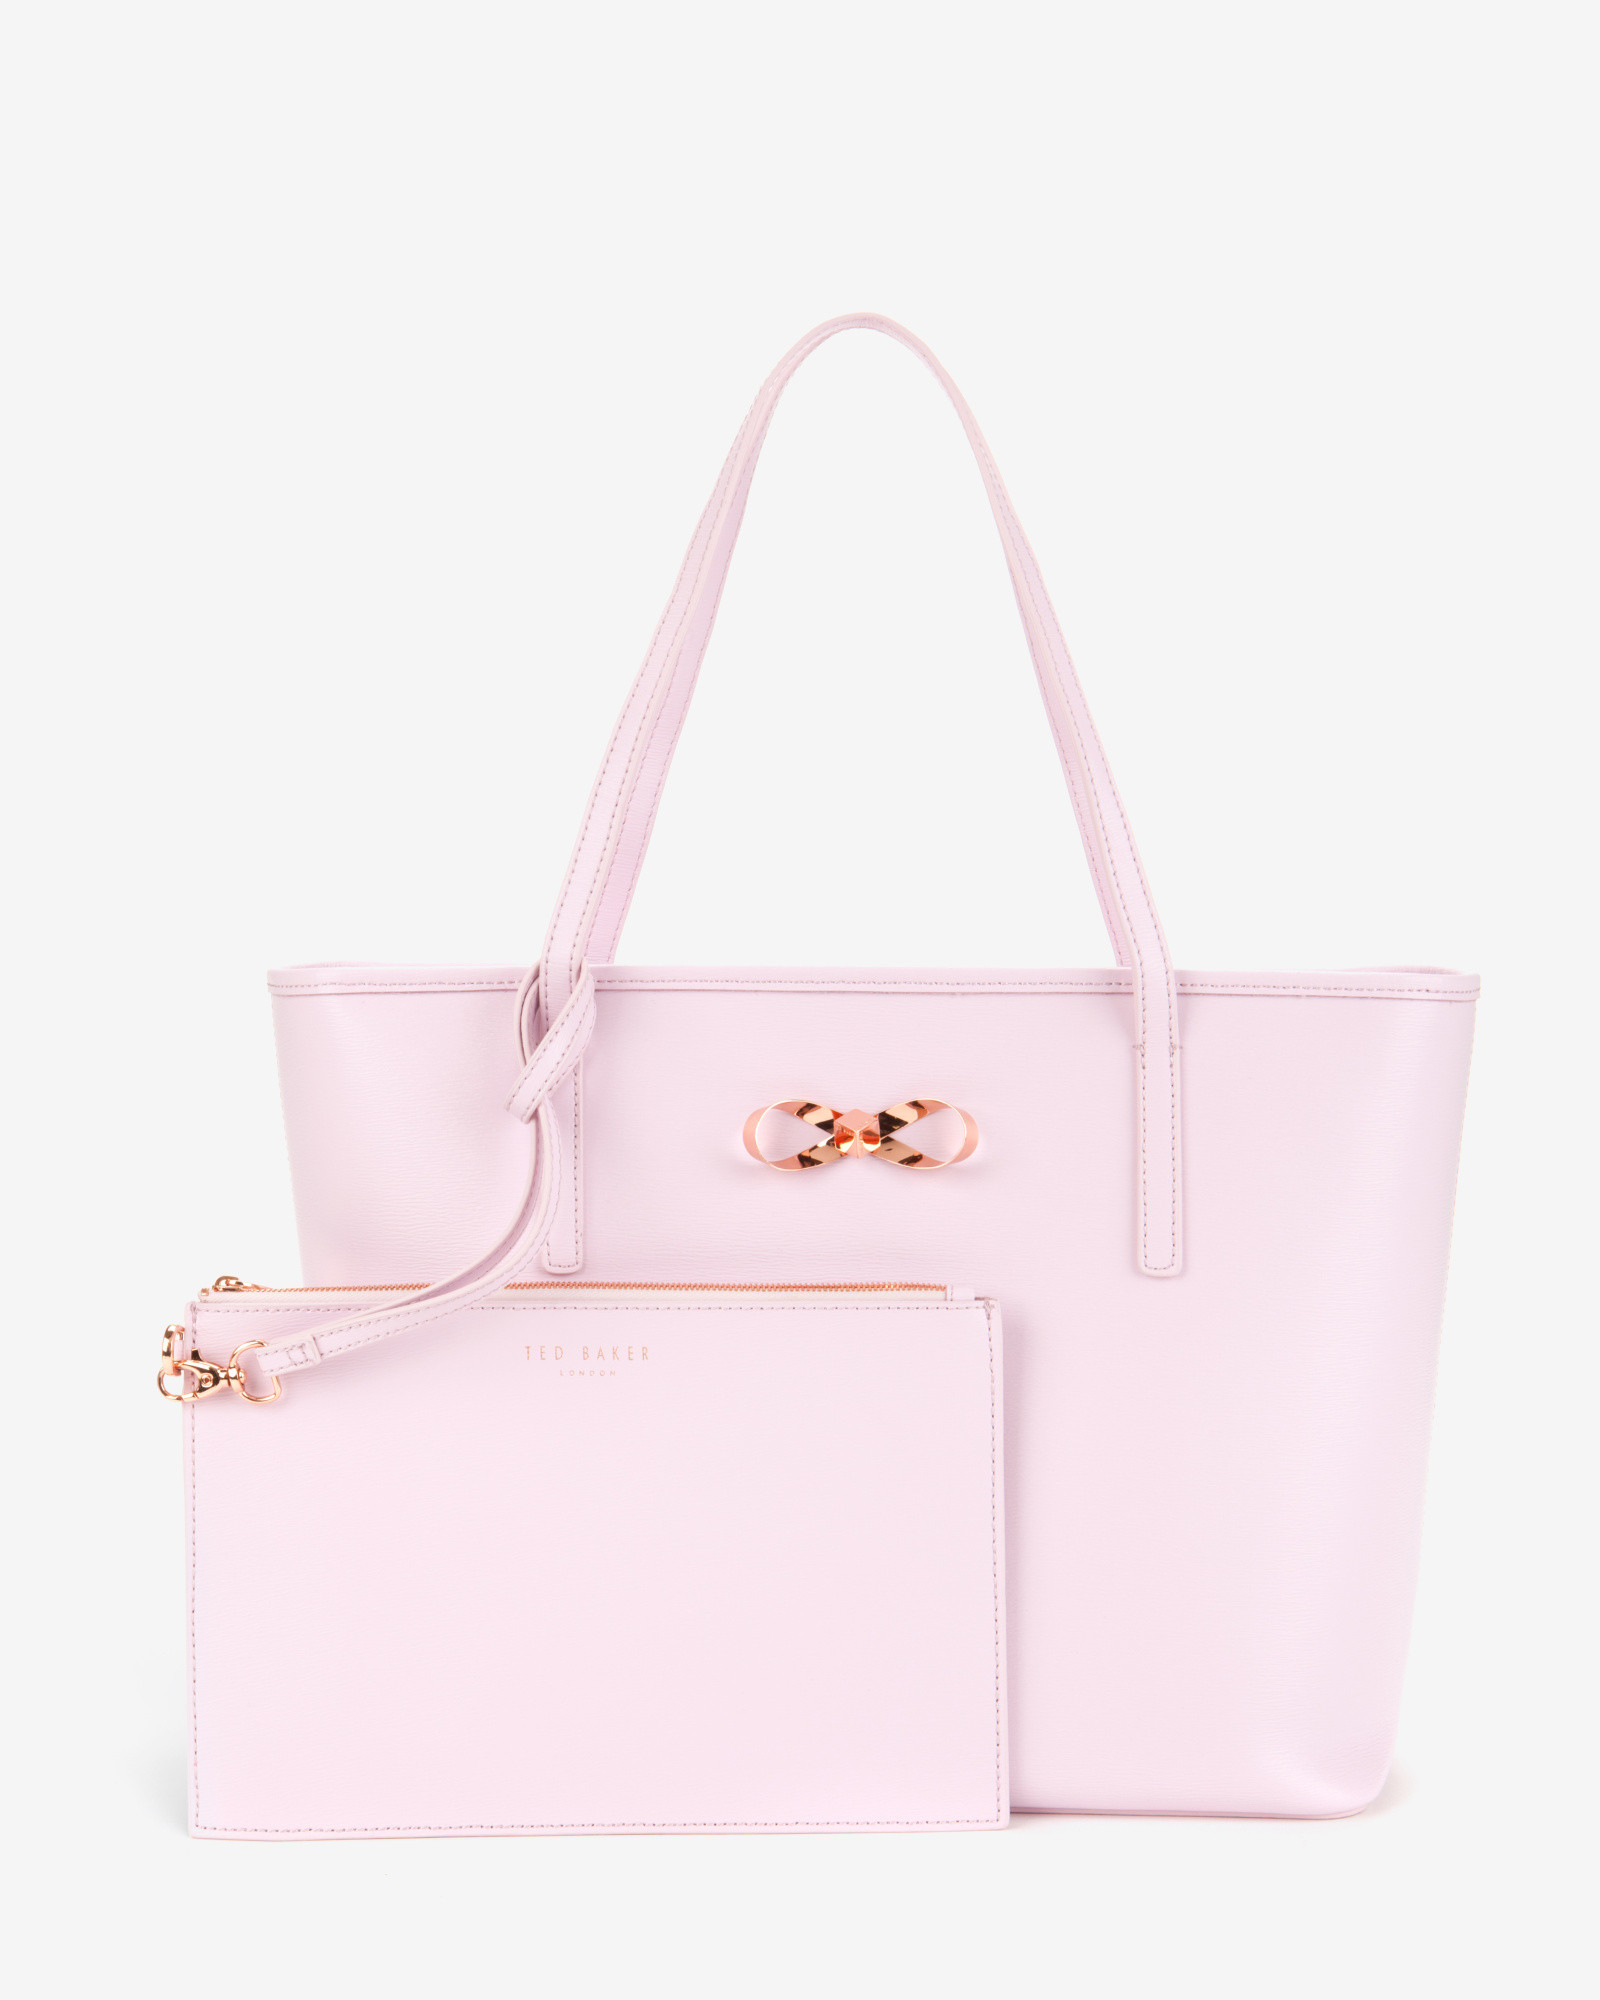 c8d7b1541619 Ted Baker Bow Detail Leather Shopper Bag in Pink - Lyst